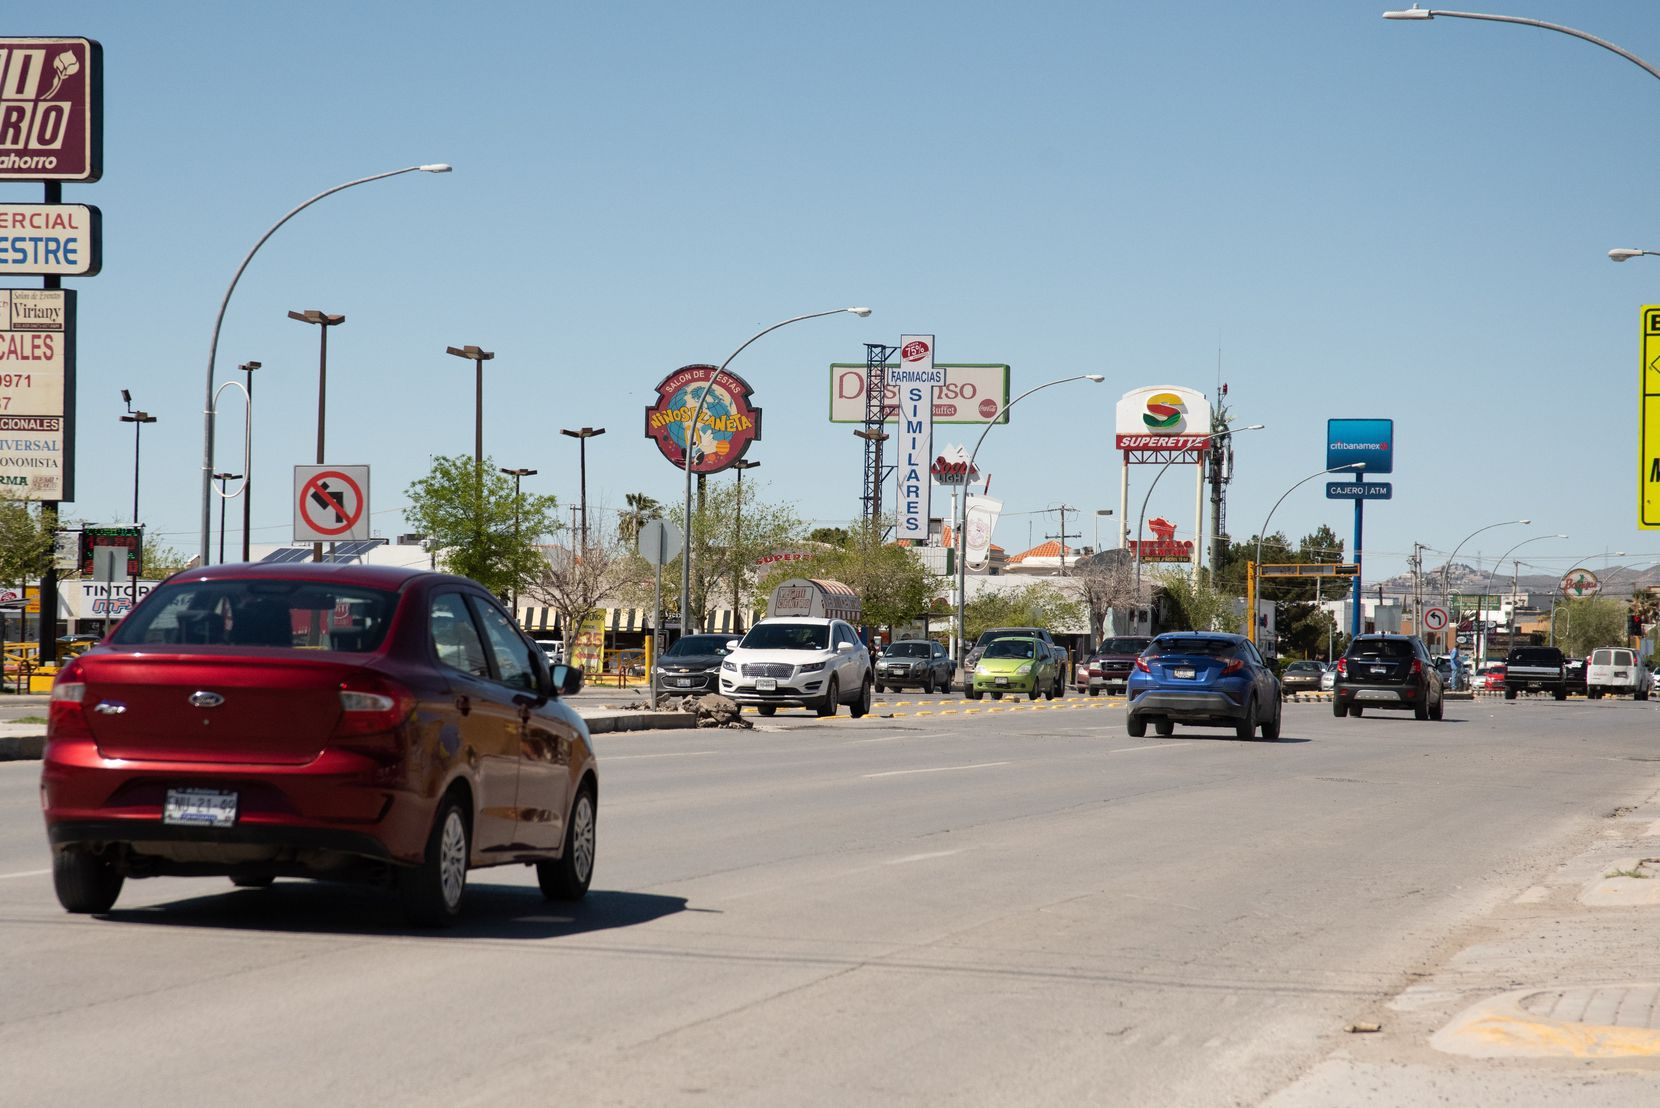 Traffic in Juarez continues to flow on March 26, 2020,  despite the local government's recent warnings to only go out when necessary in order to slow the spread of coronavirus.